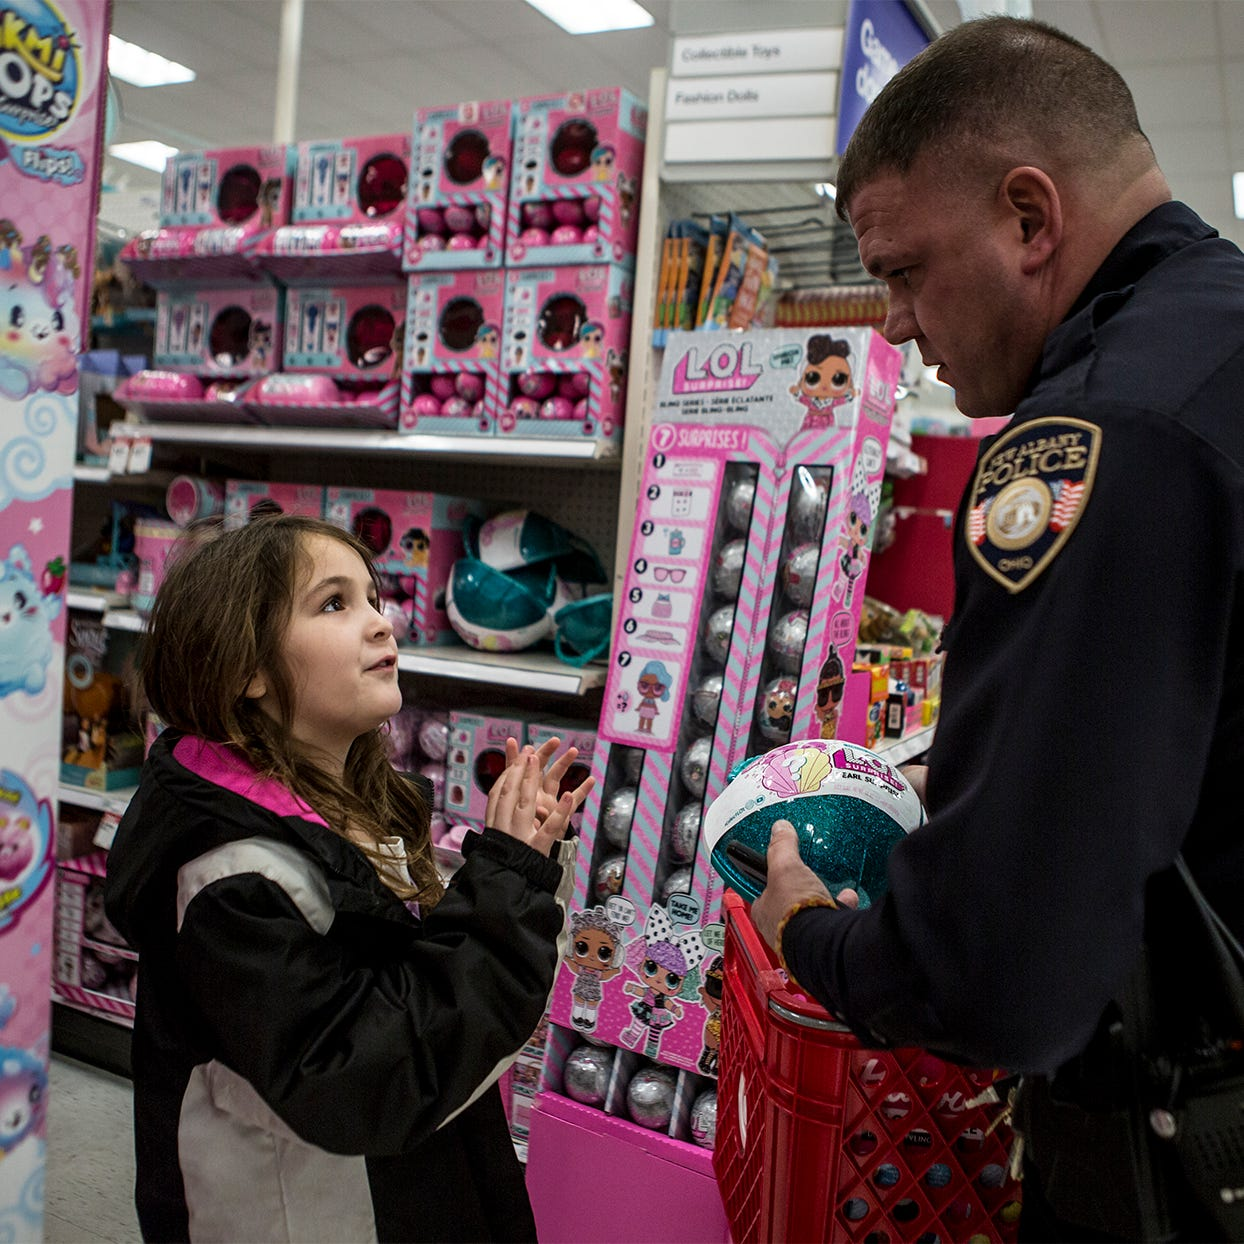 Families' holidays brightened by 'Shop with A Cop'